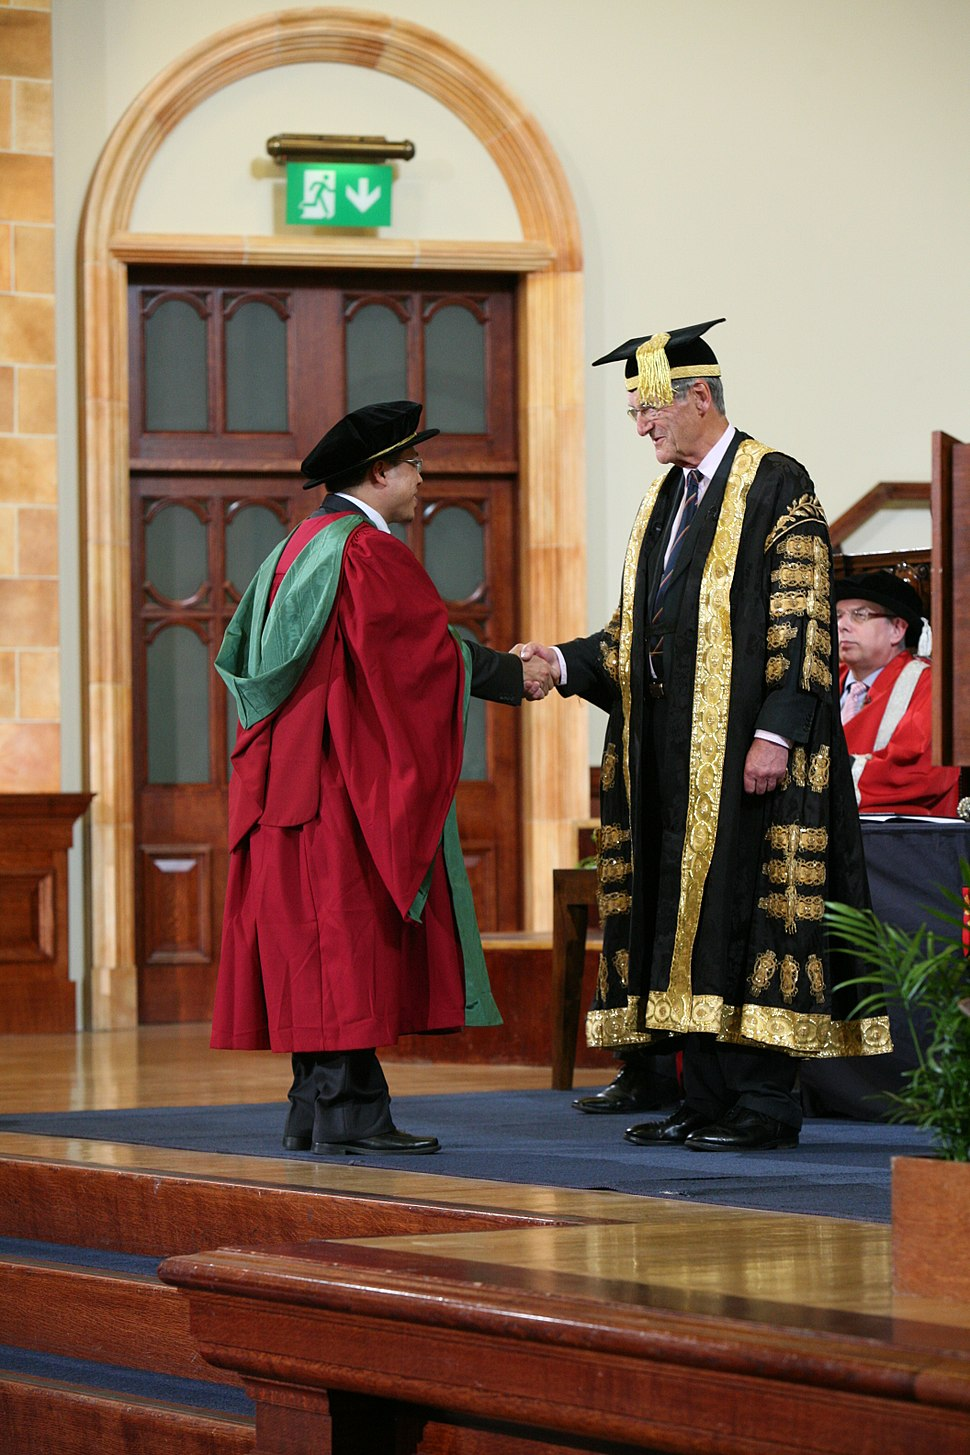 PhD graduand shaking hands with Sir Dominic Cadbury, the Chancellor of the University of Birmingham - 20120705